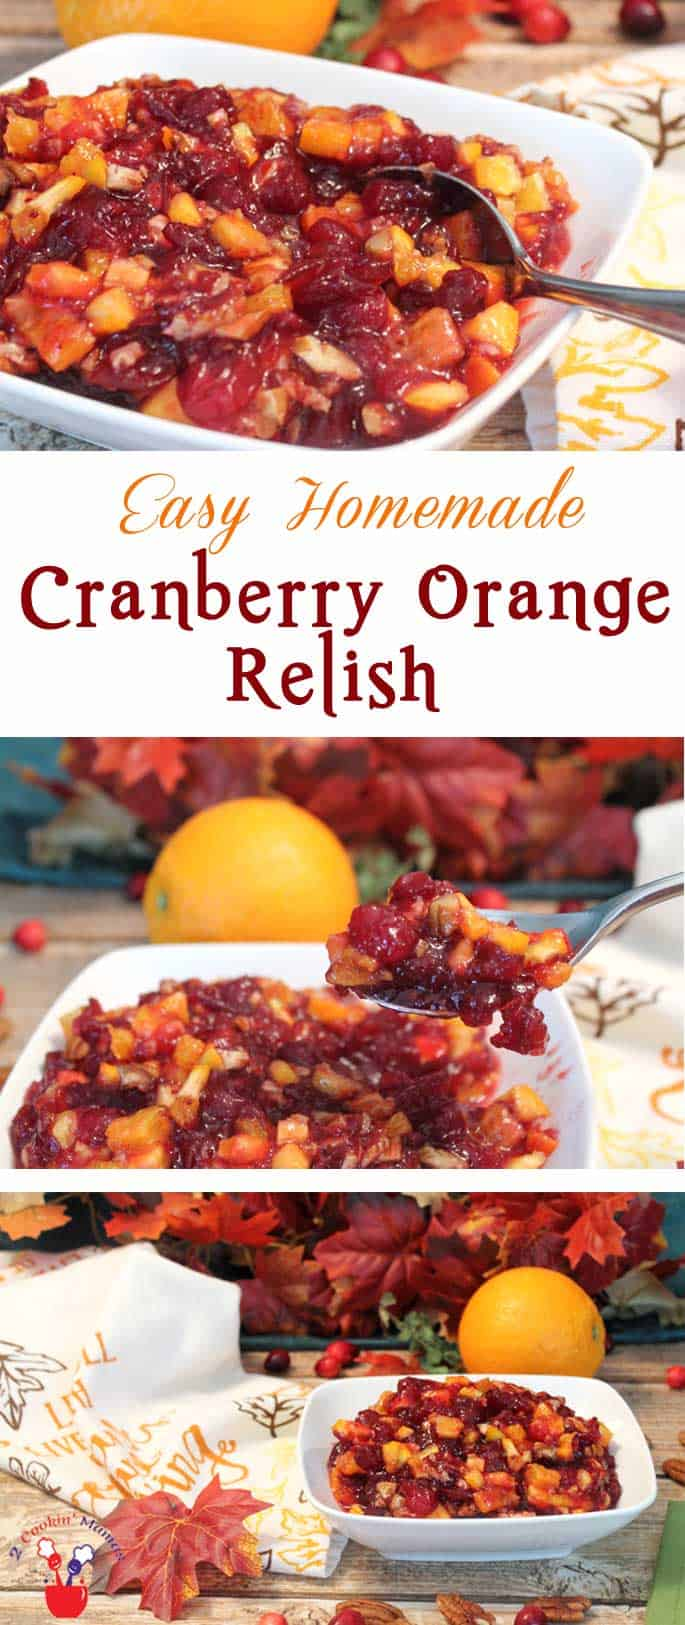 Fresh, tart, homemade cranberry orange relish is easy to make & the perfect side dish to serve with your holiday turkey. #relish #cranberryrelish #cranberry #sidedish #Thanksgiving #Thanksgivingside